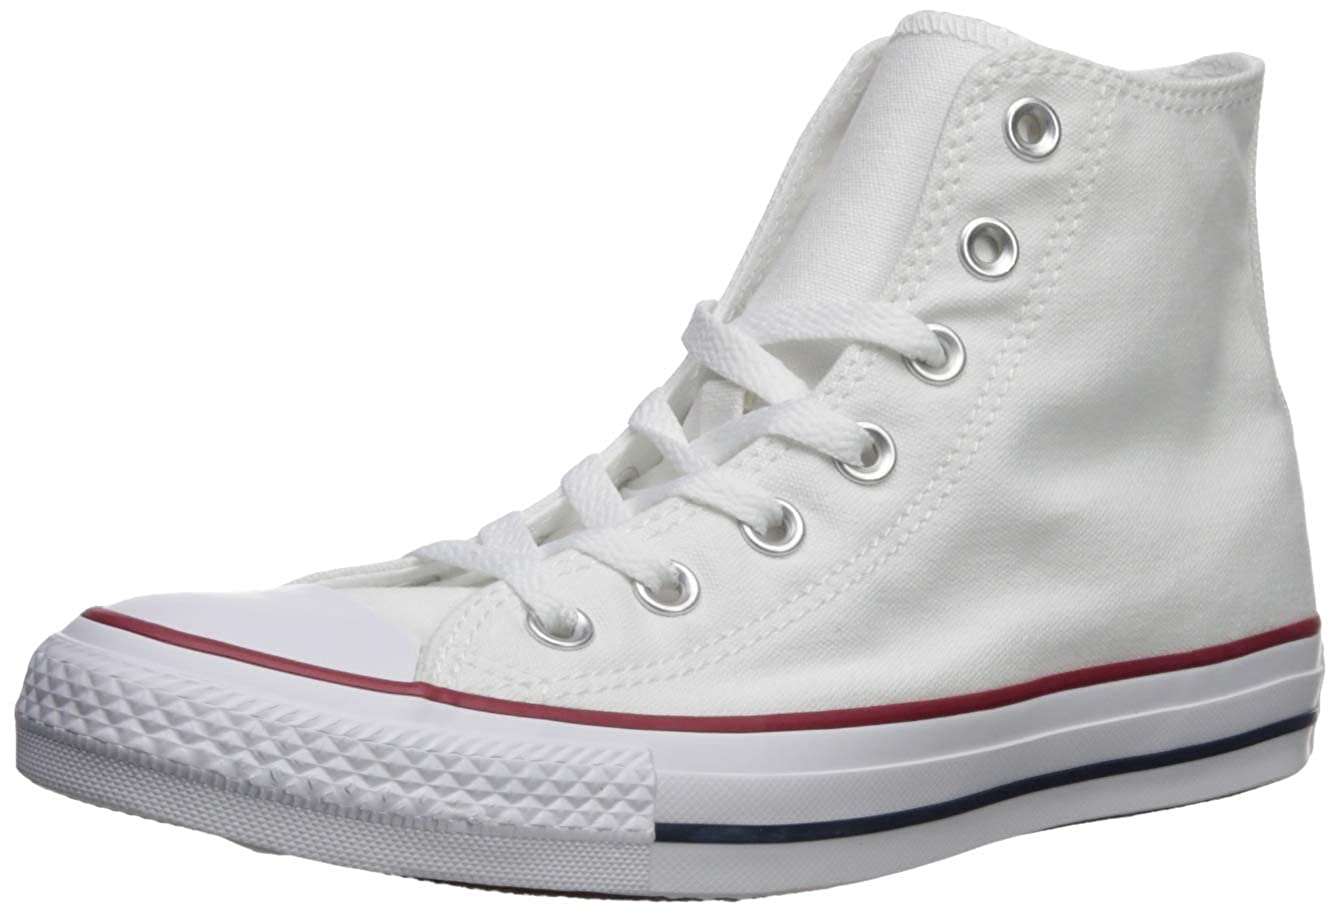 TALLA 39.5 EU. Converse All Star Hi, Zapatillas Unisex Adulto